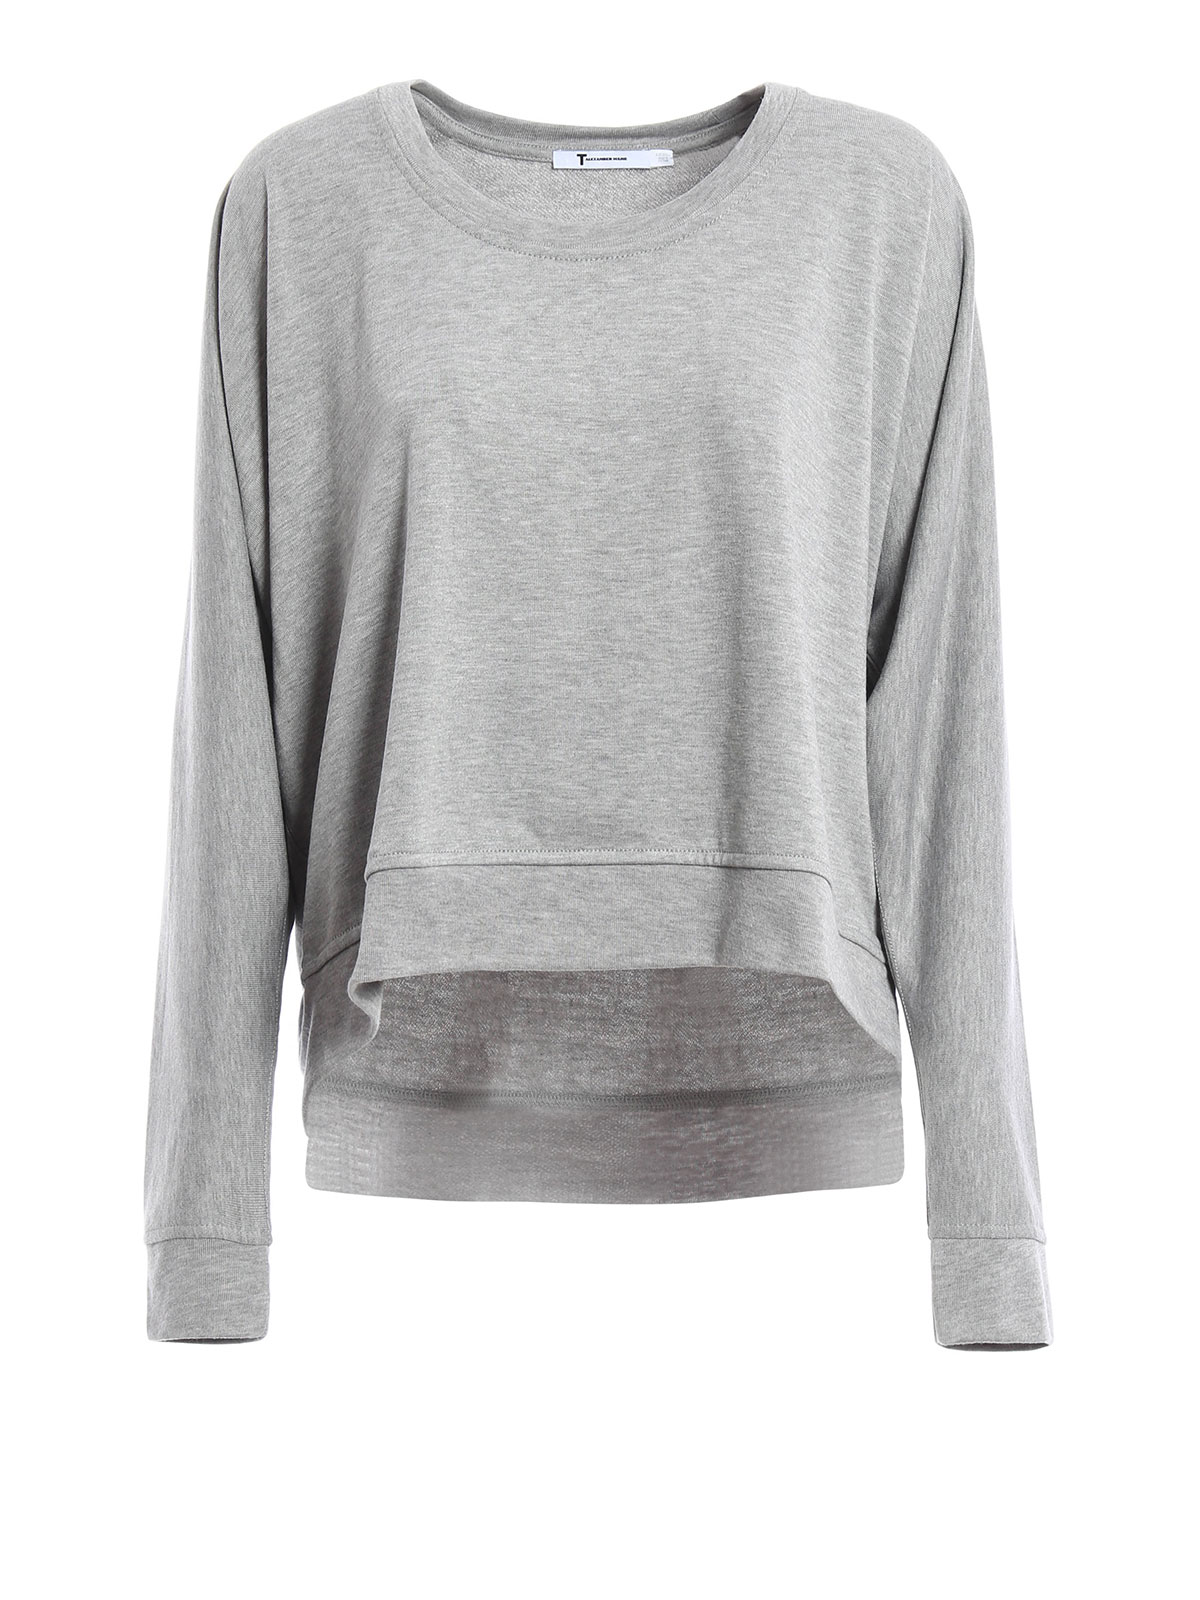 Dolman sleeve t shirt by t by alexander wang t shirts for Alexander wang t shirts